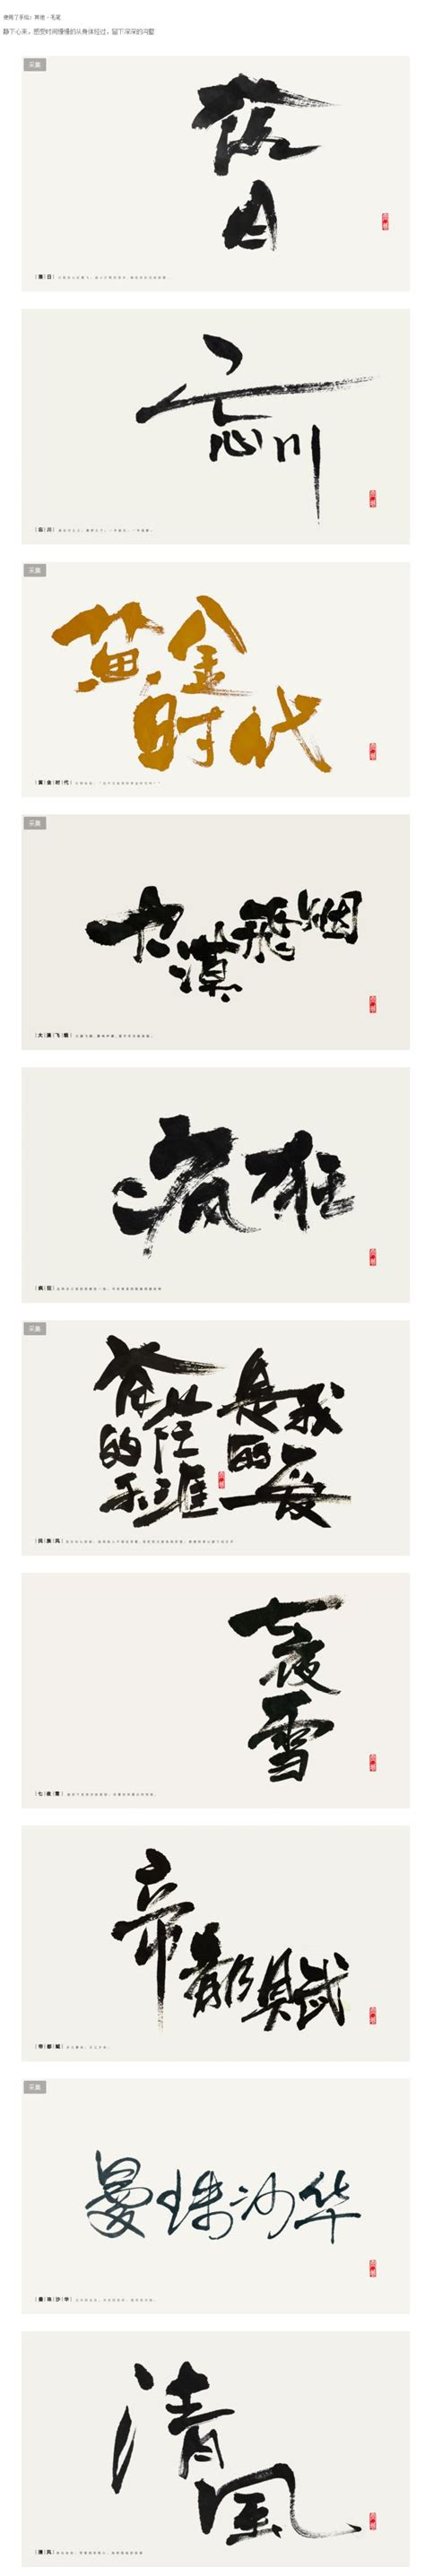 chinese graphic design layout 184 best chi typo images on pinterest banner banners